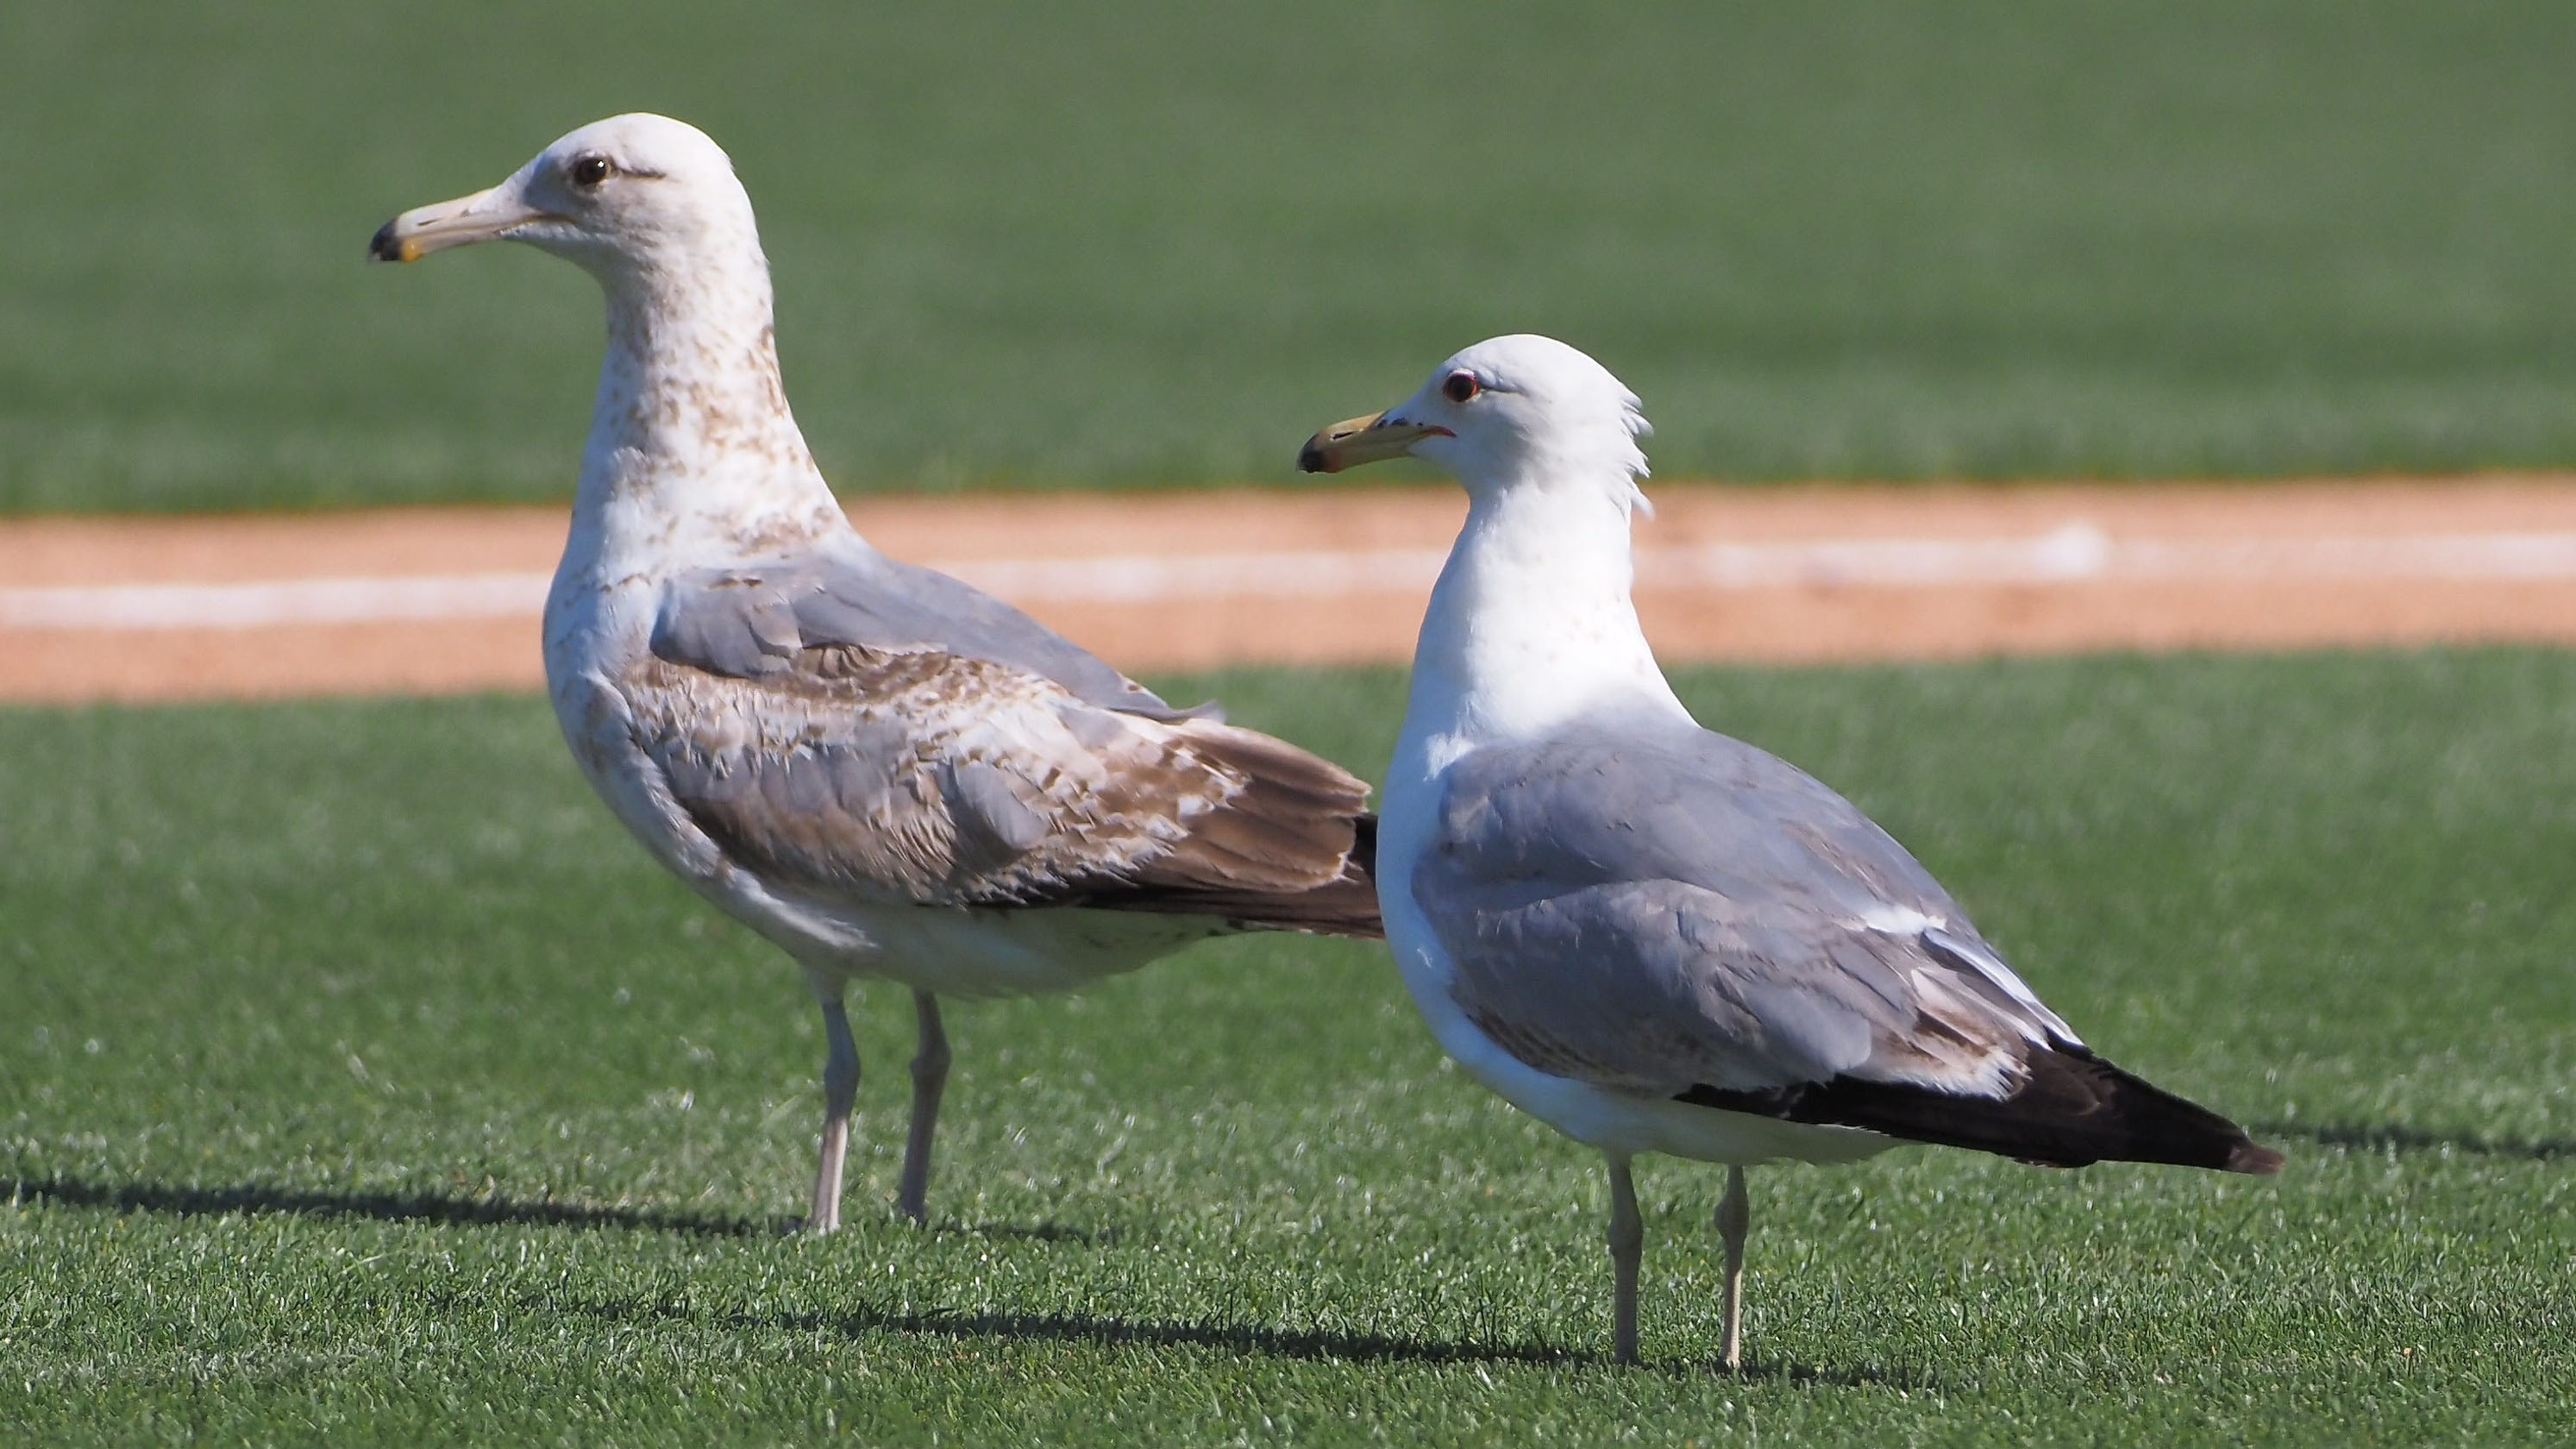 San Francisco Giants solve seagull issue by playing 'Cha Cha